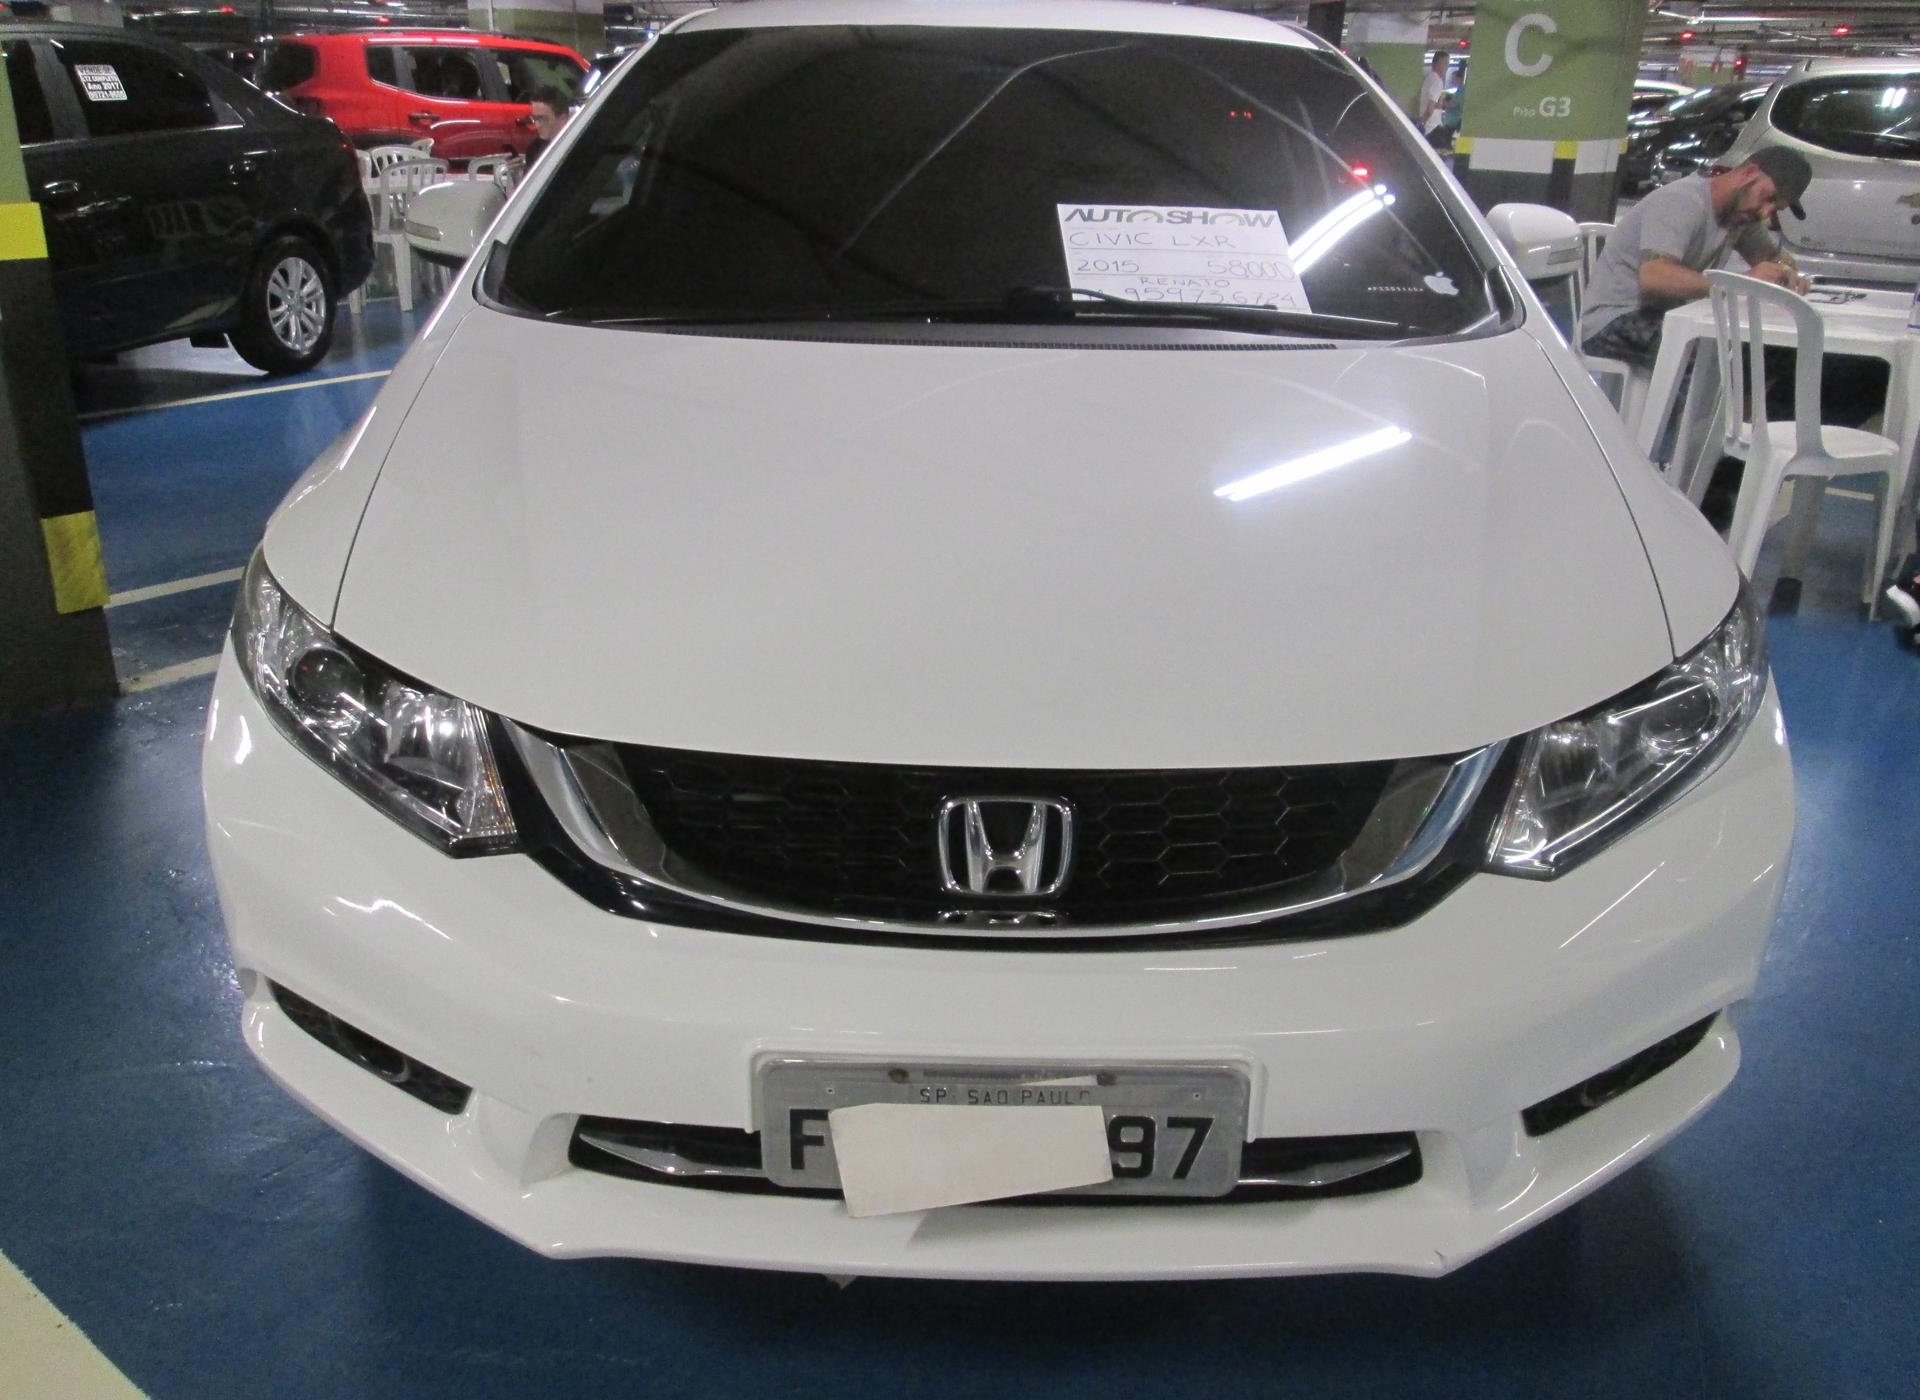 Feirão Auto Show Shopping ABC - HONDA CIVIC SEDAN LXR 2.0 FLEXONE 16V AUT. 4P 2015-2015